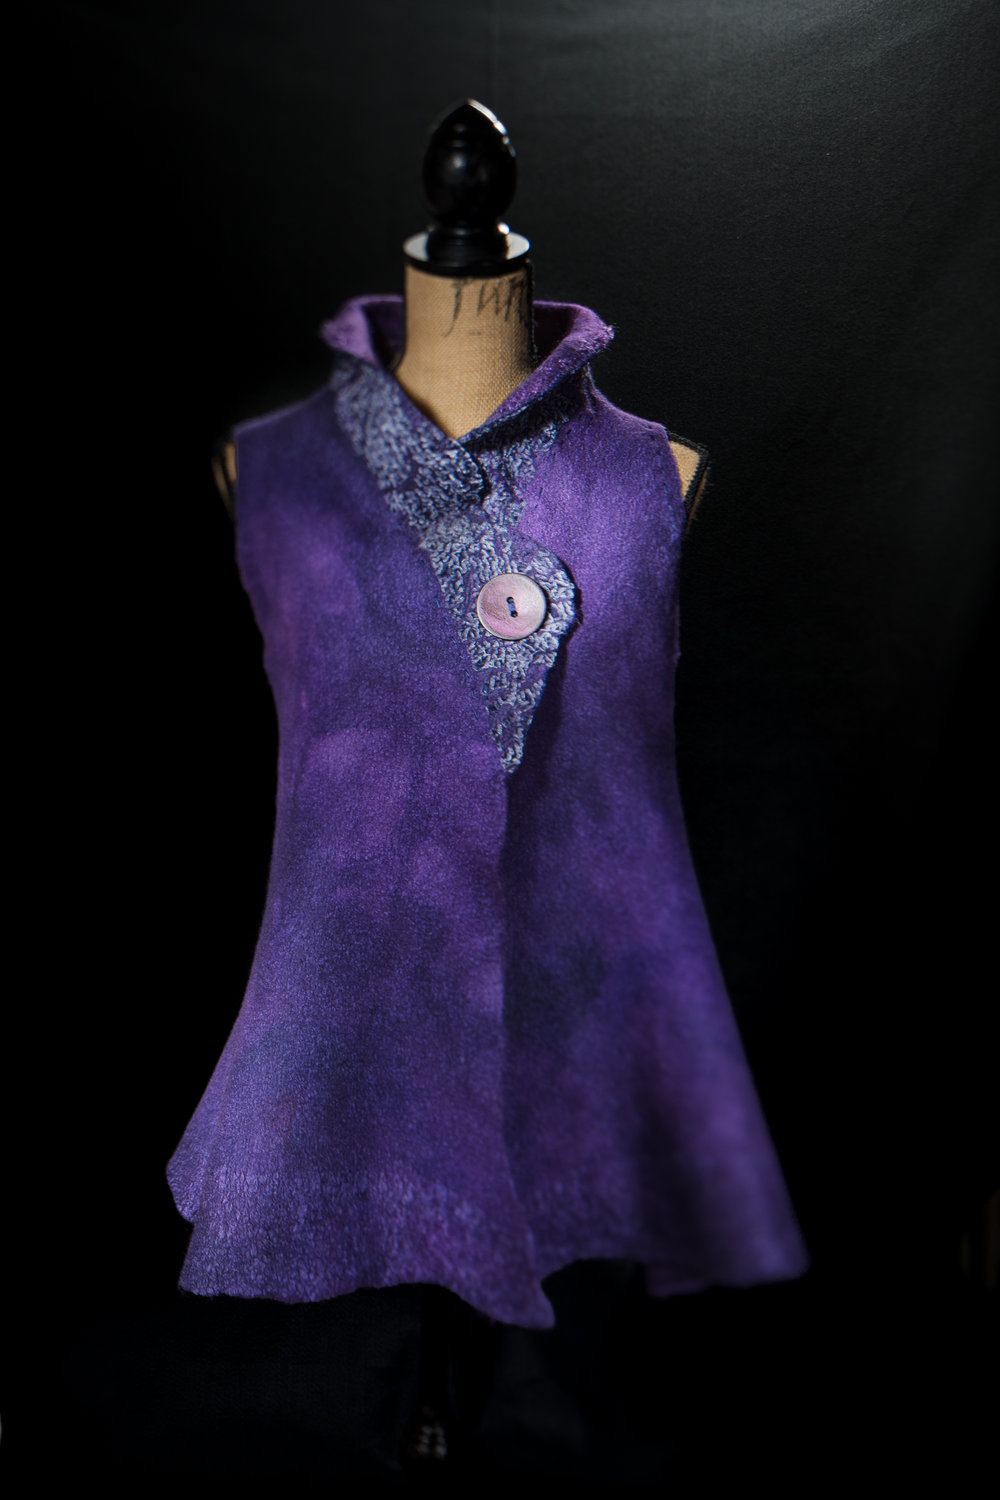 Vest with a velvet collar